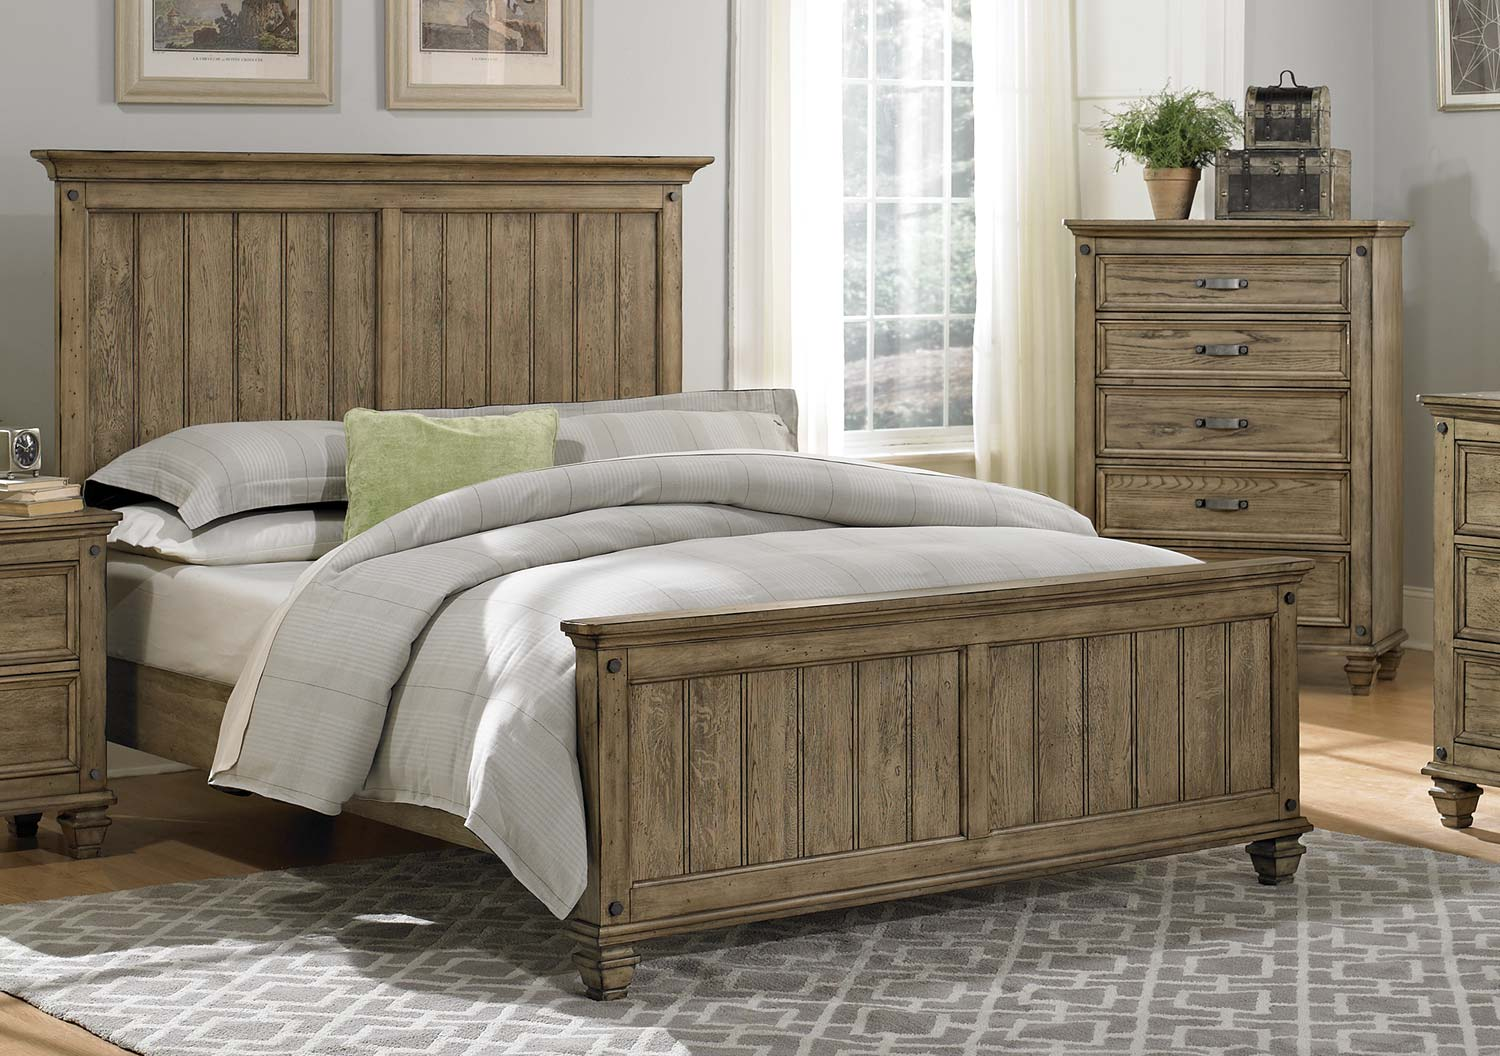 Homelegance sylvania bedroom set driftwood oak 2298 bed for Furniture bedroom furniture